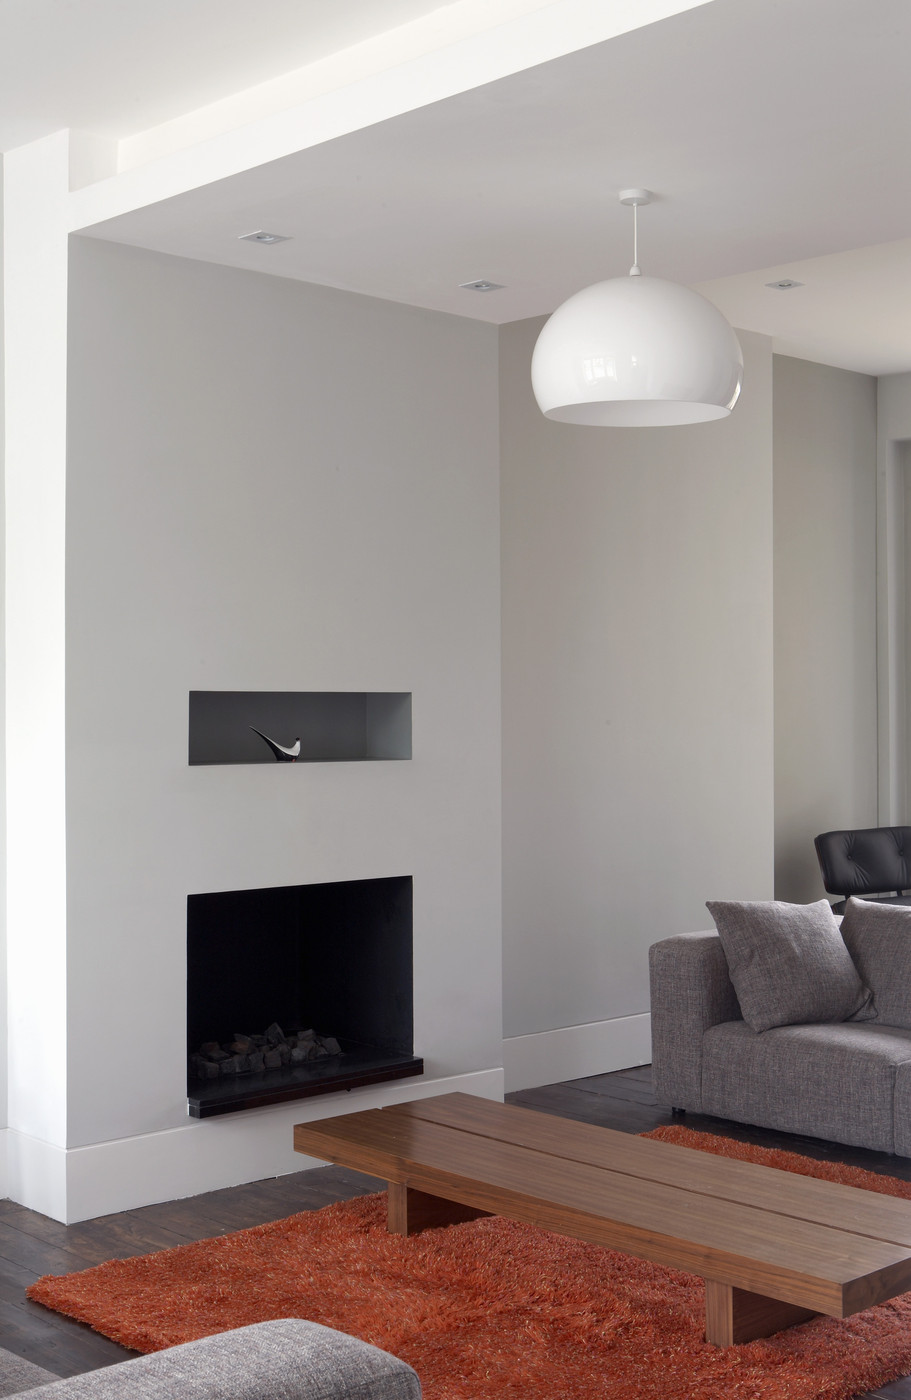 Chimney Breast Photos 22 Of 74